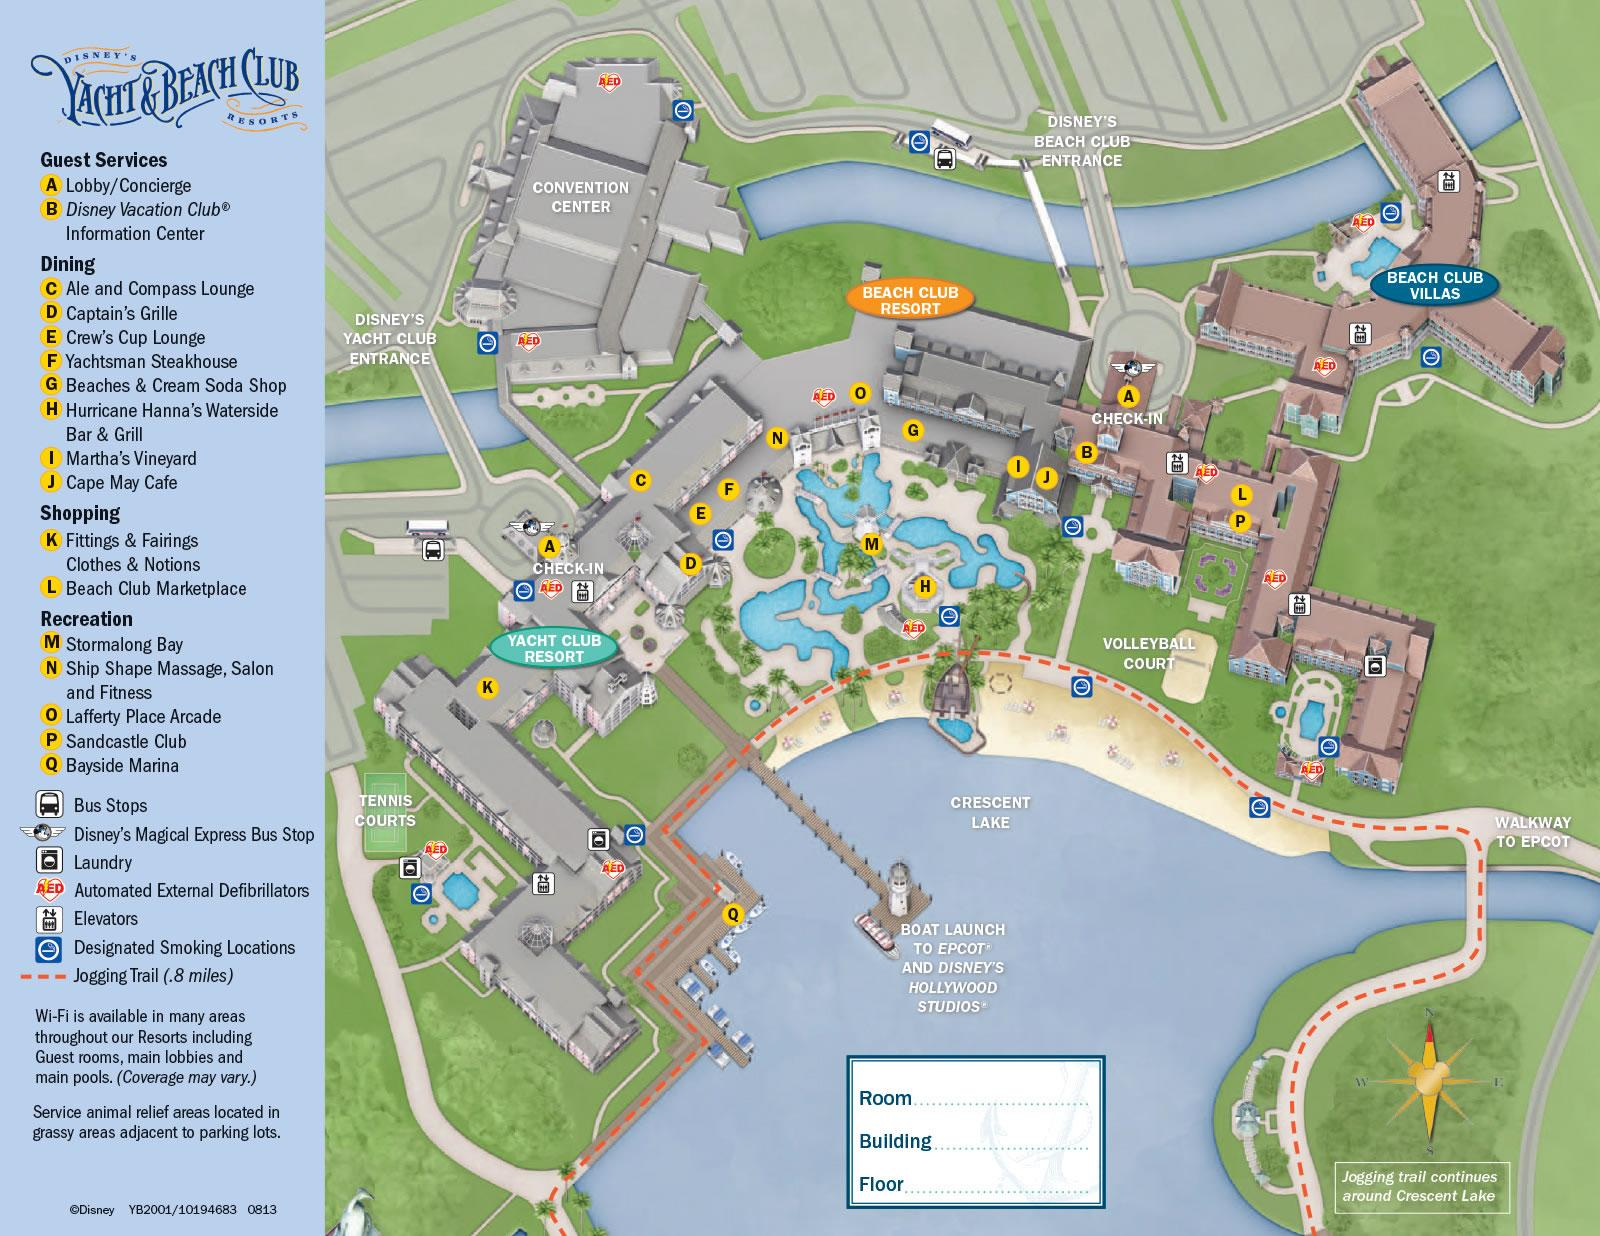 Disneys-Beach-Club-Villas-Resort-Map